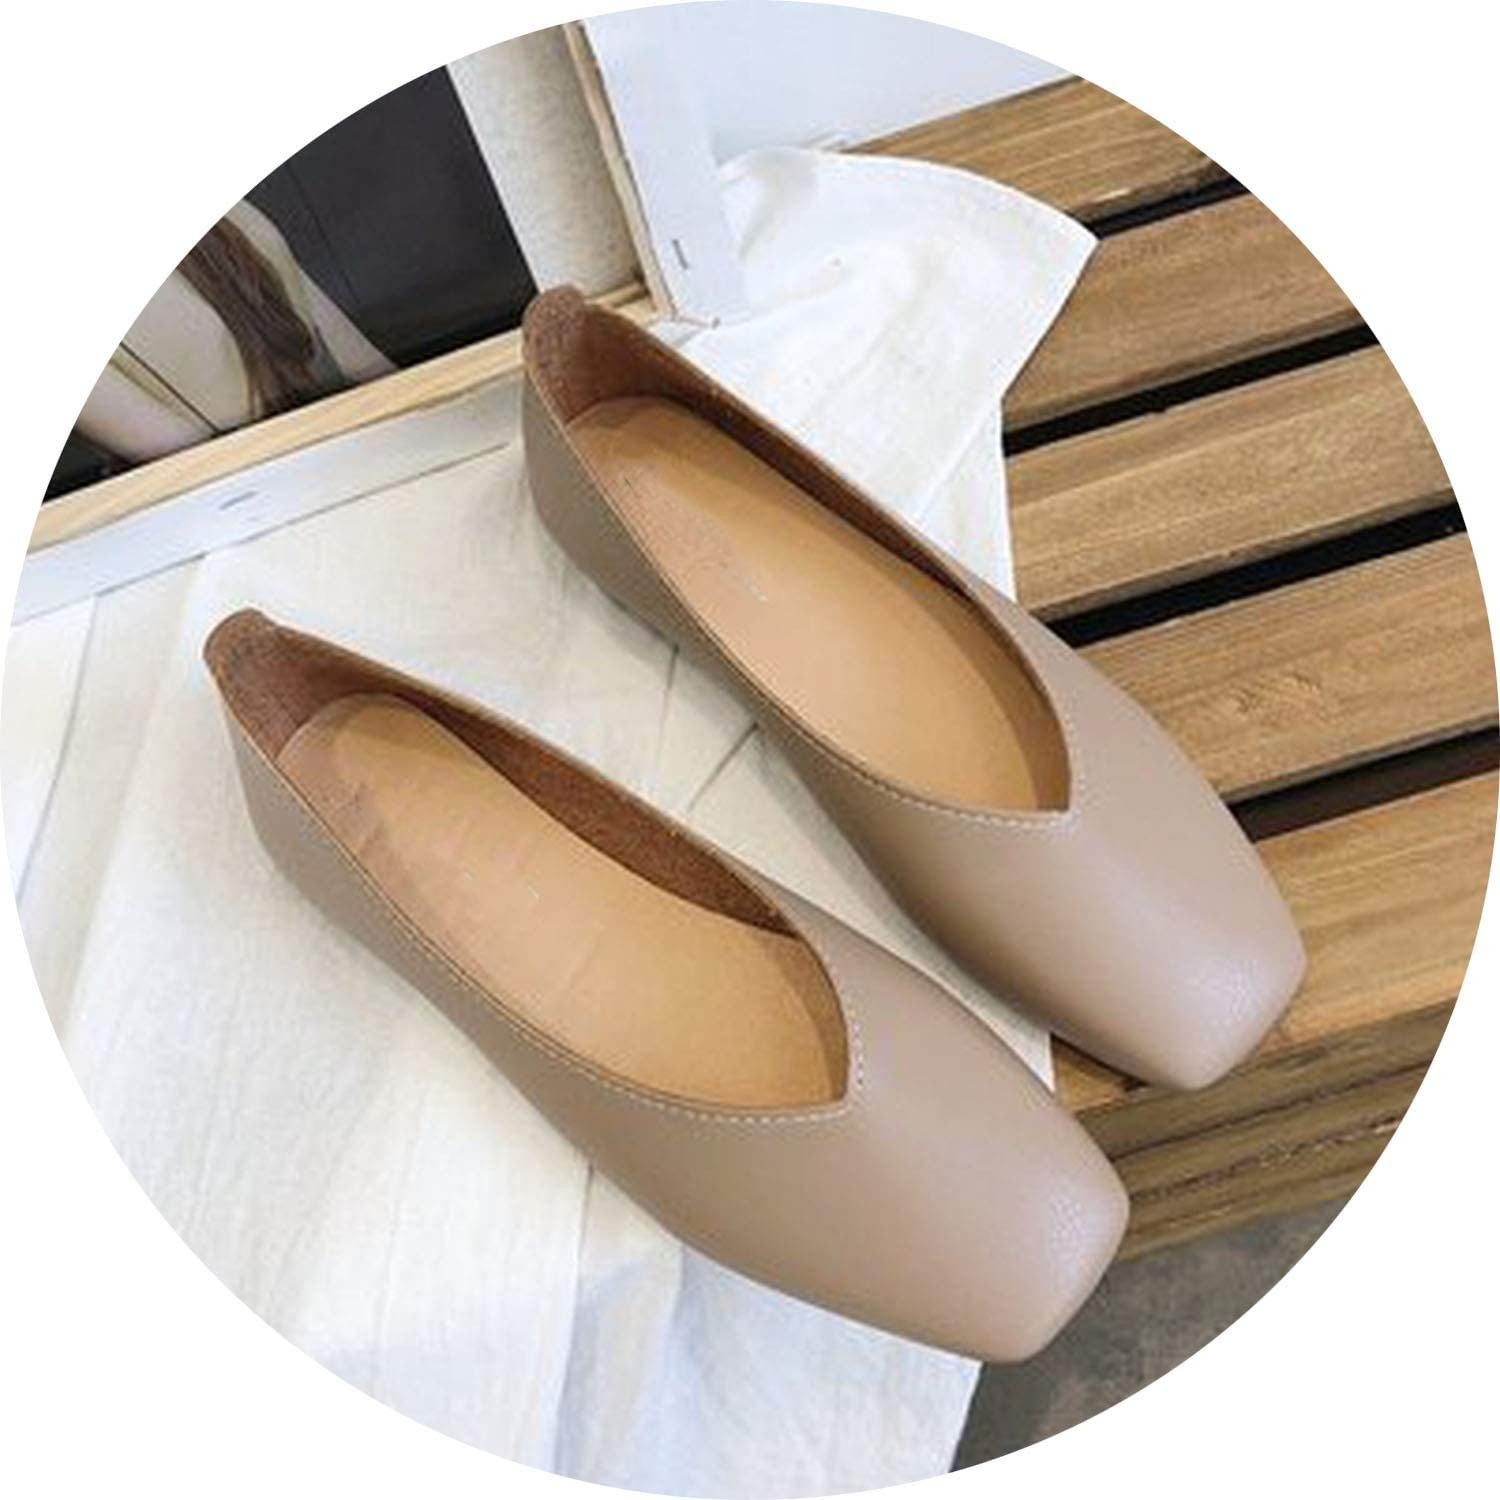 Ting room Women Flats Soft Leather Ballet Flats Handmade Slip-on Loafers Ladies Moccasins Casual shoes